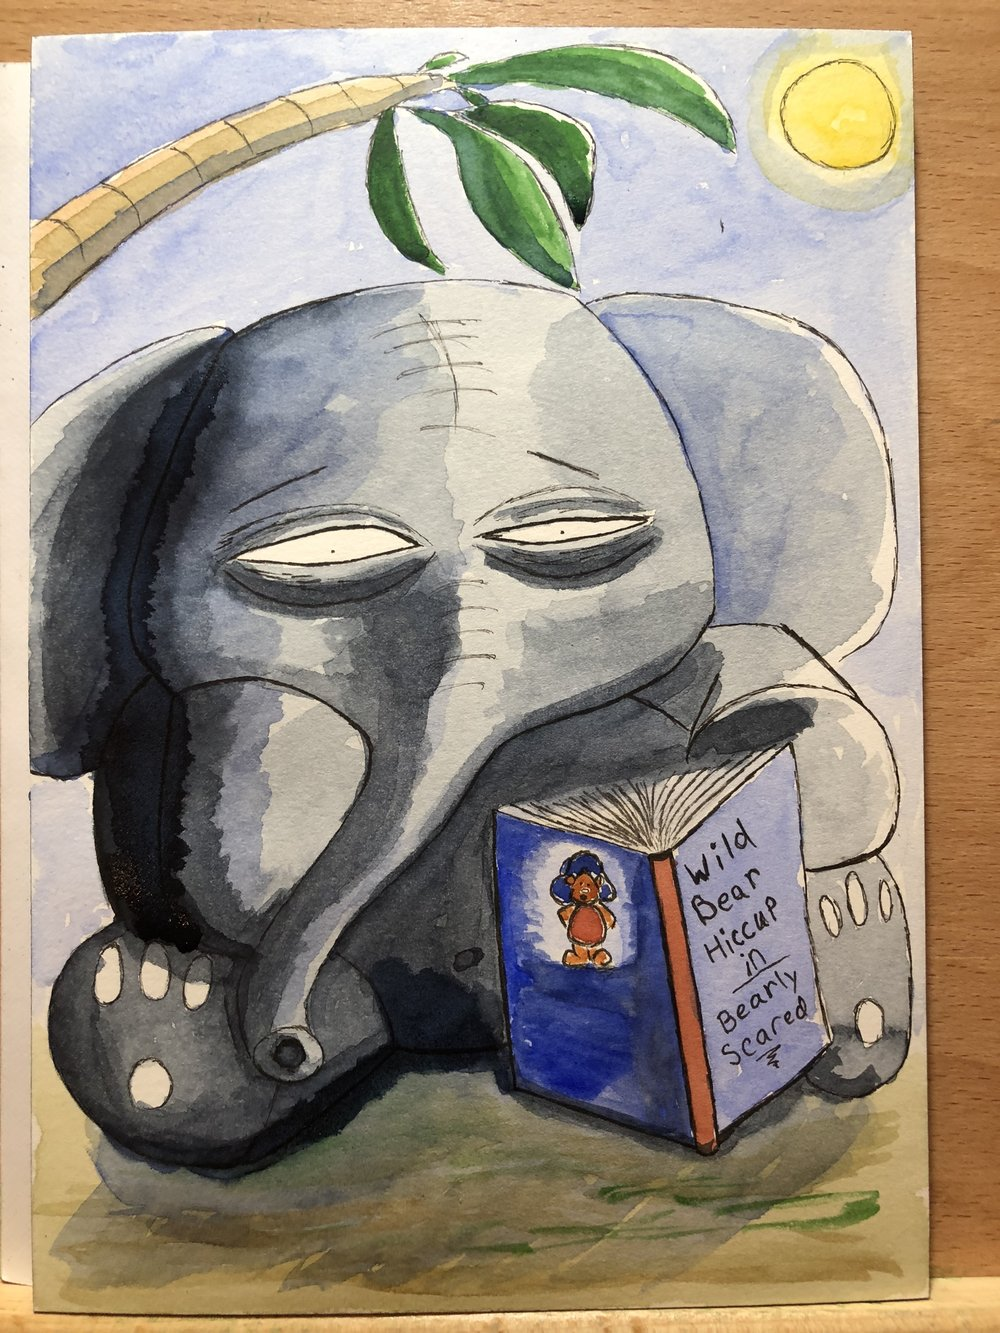 Igor is grumpy because he couldn't keep his eyes open long enough to read his fave book.